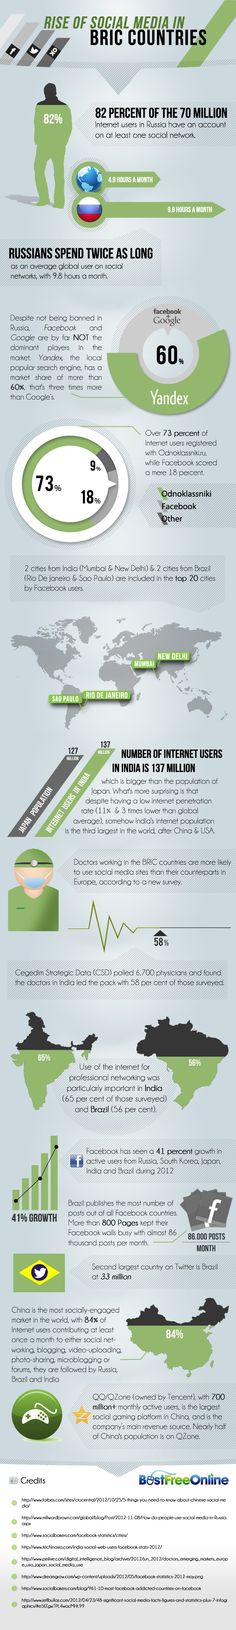 Facebook On The Rise In Russia, India, Brazil #infographic